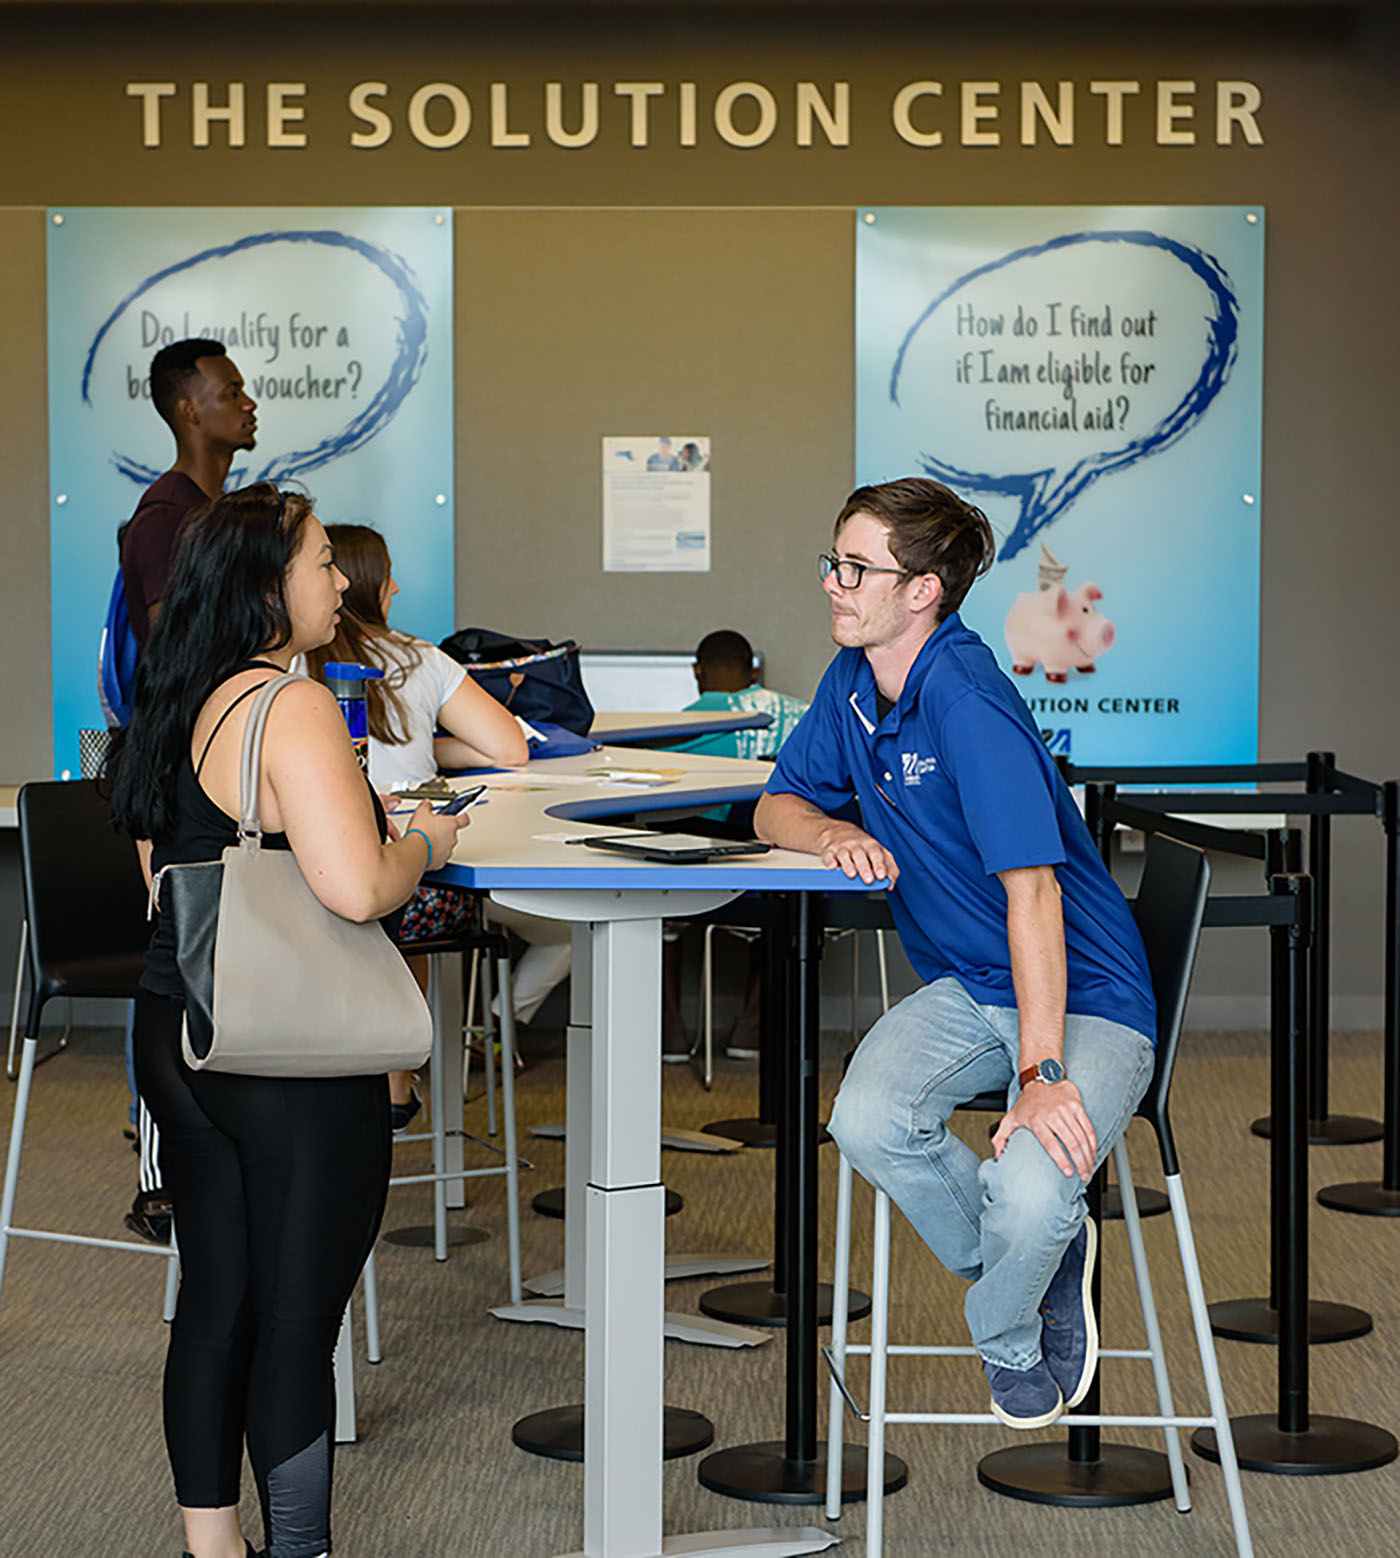 solution center student worker assisting students with quesitons